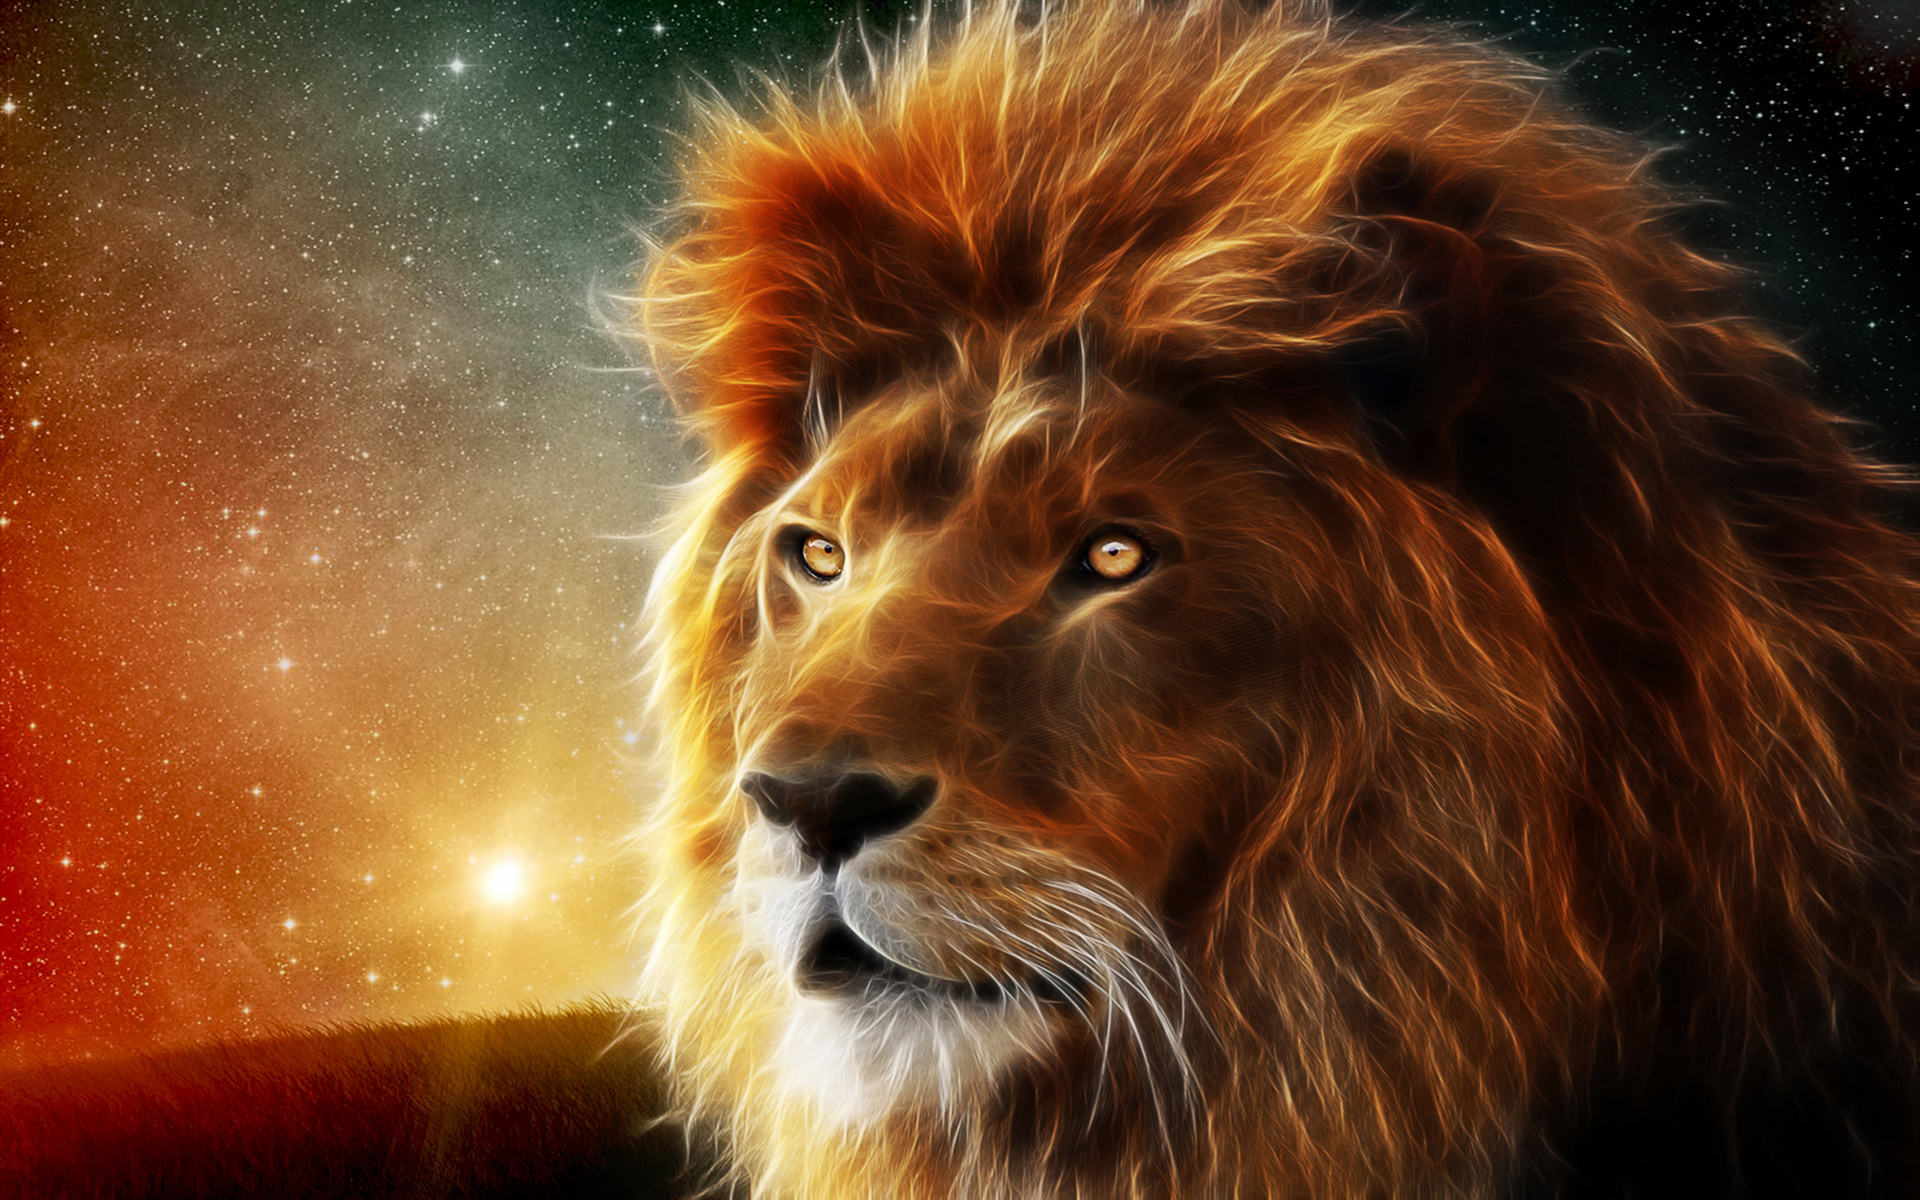 Lions Images Lion Hd Wallpaper And Background Photos 40455258